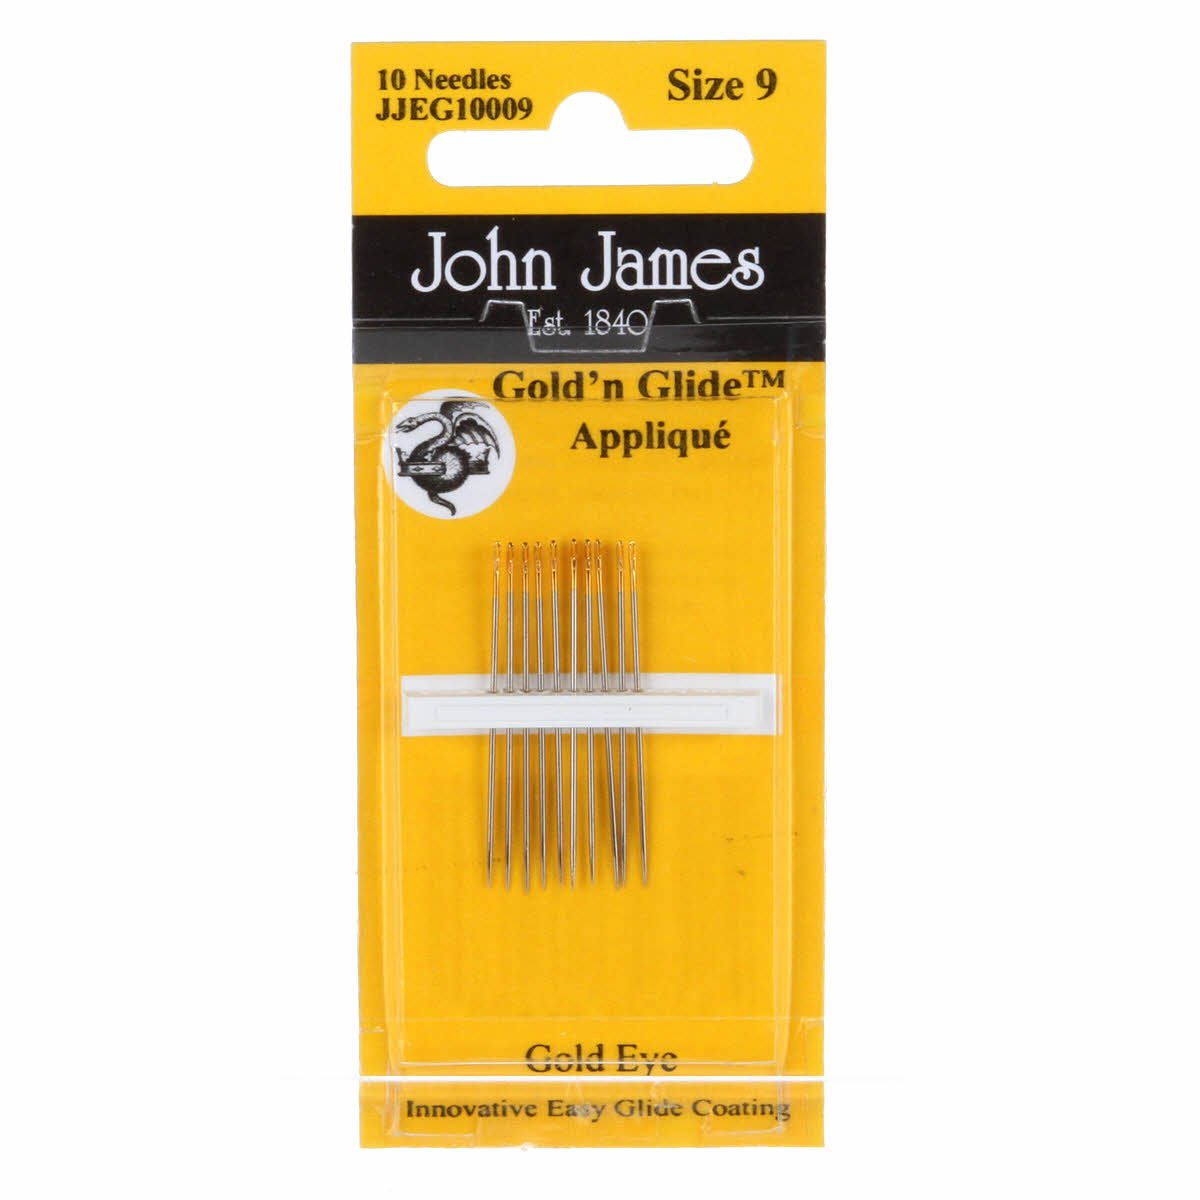 John James Gold' nGlide Applique 10 Needles Size 9